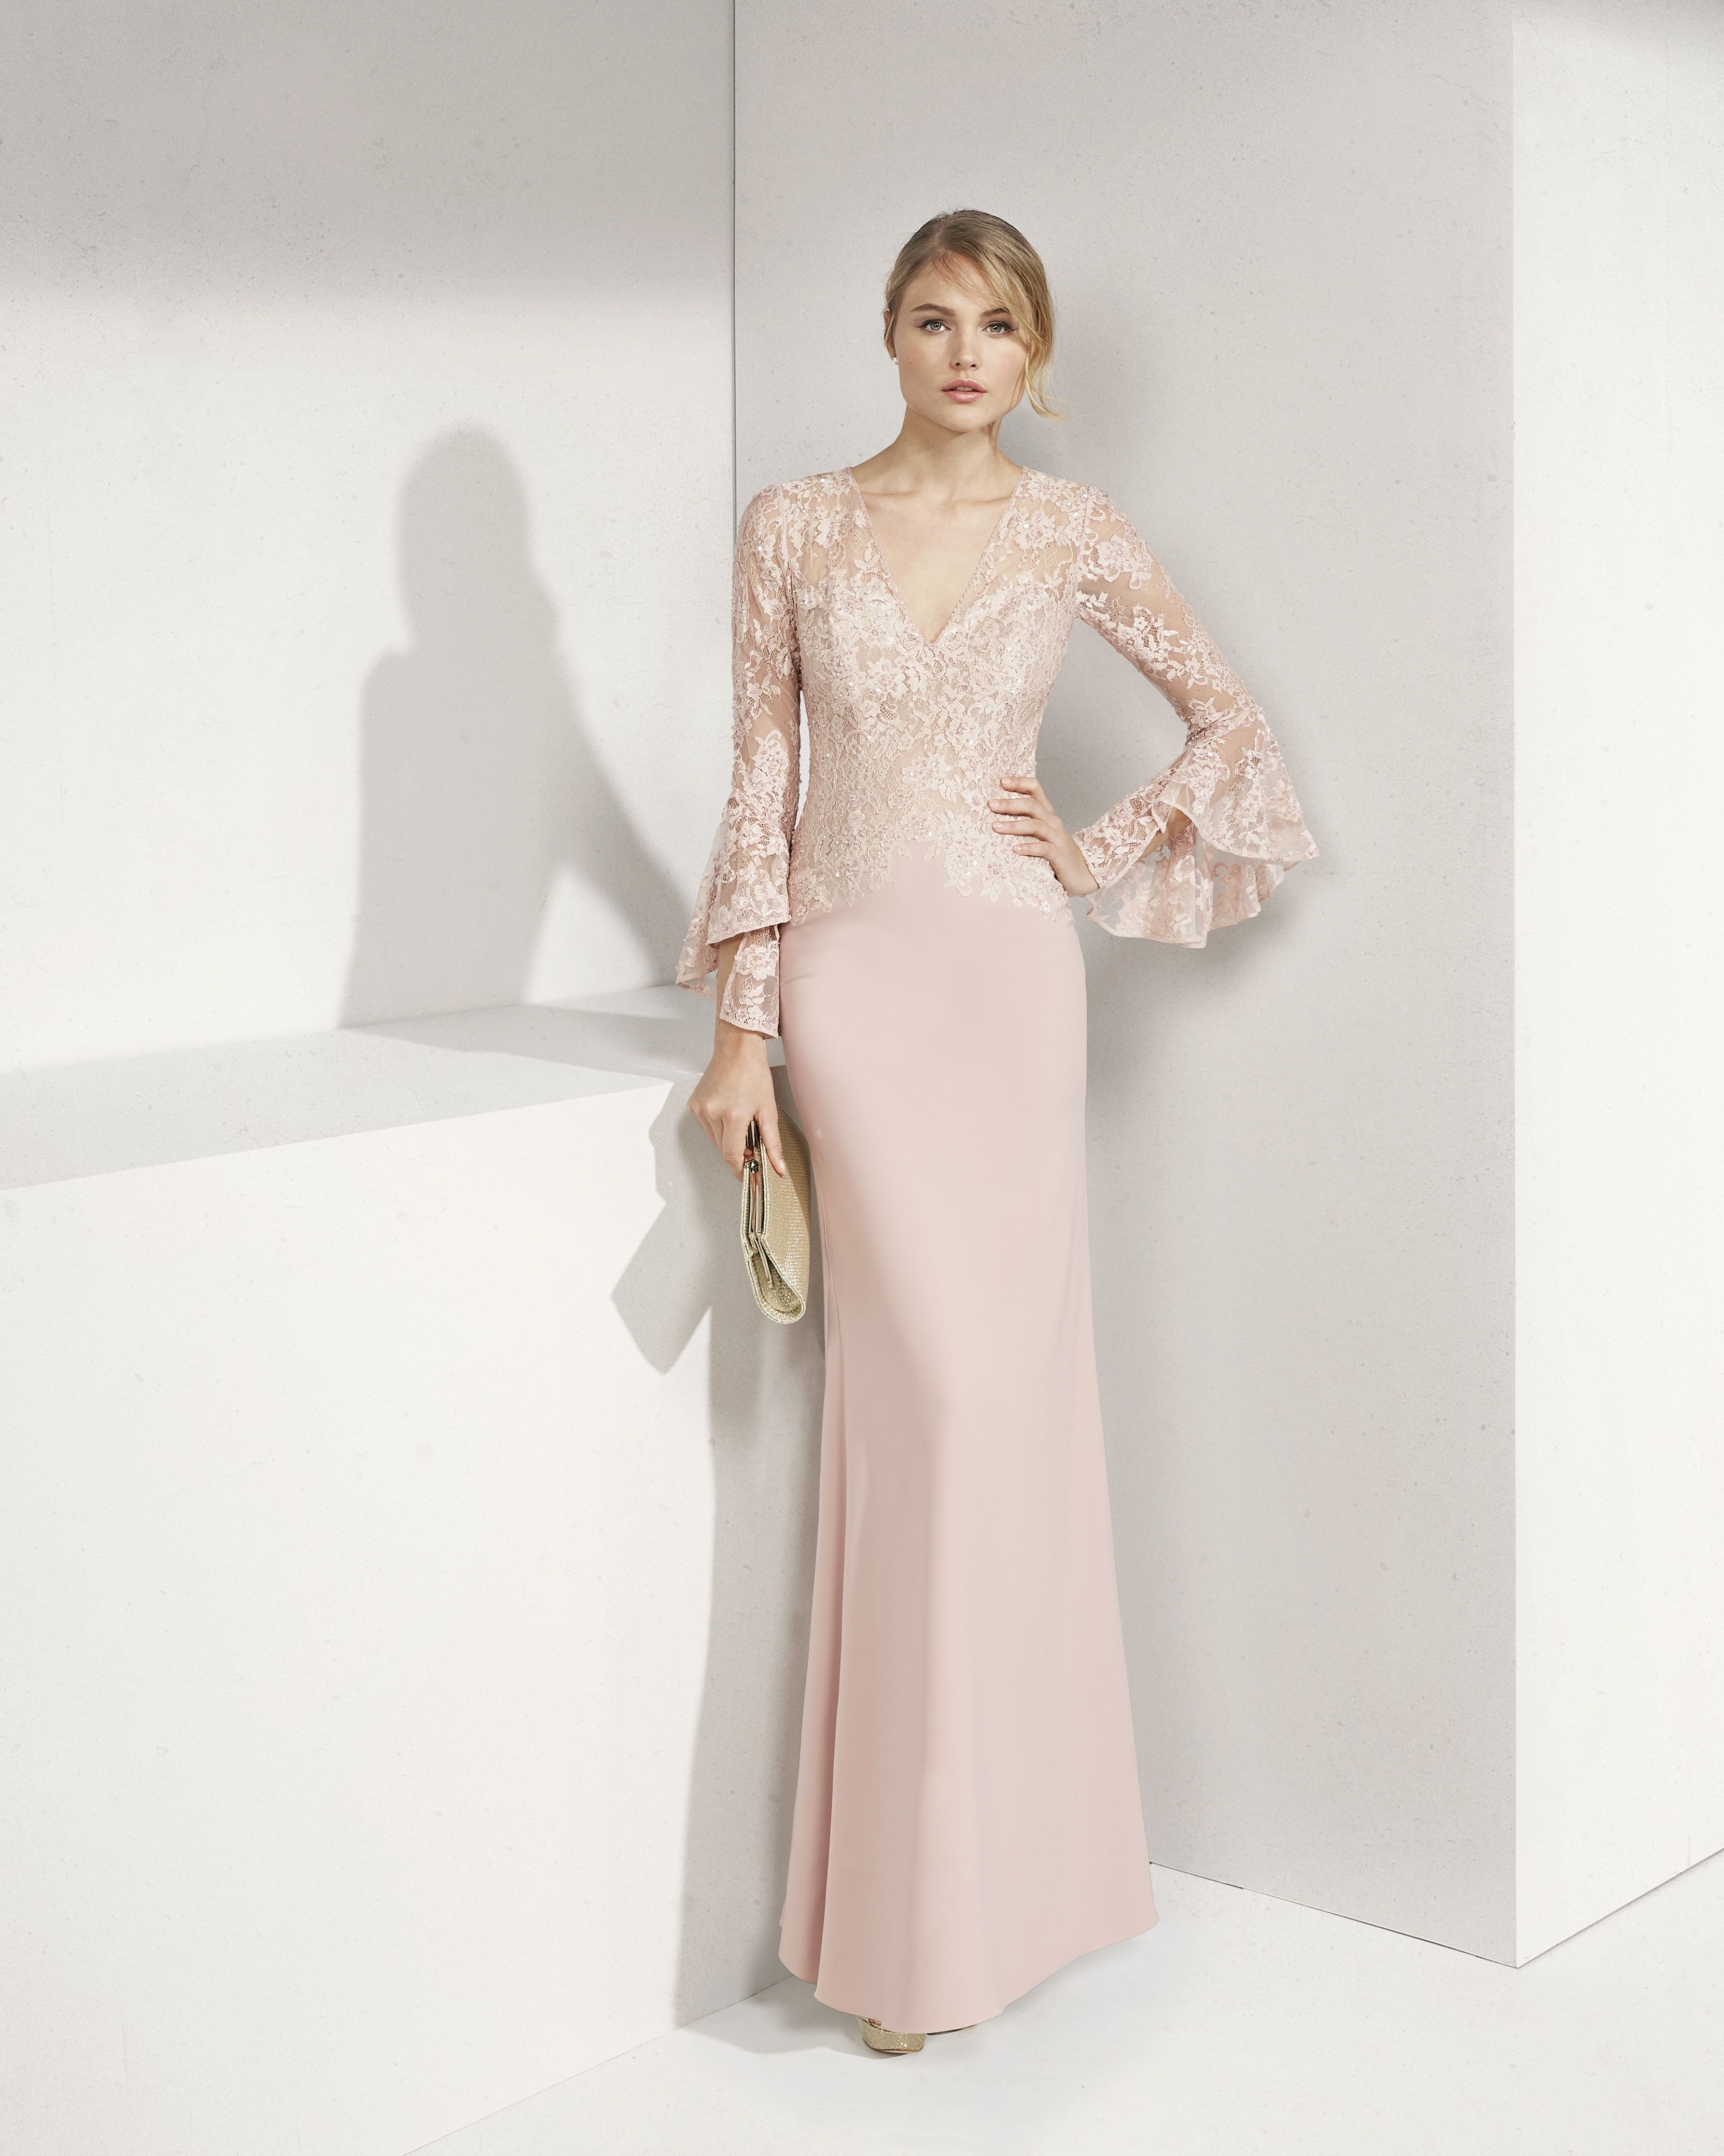 91acd41dafd Lace and crepe cocktail dress. V-neckline and long flounced sleeves. 2019  ROSA